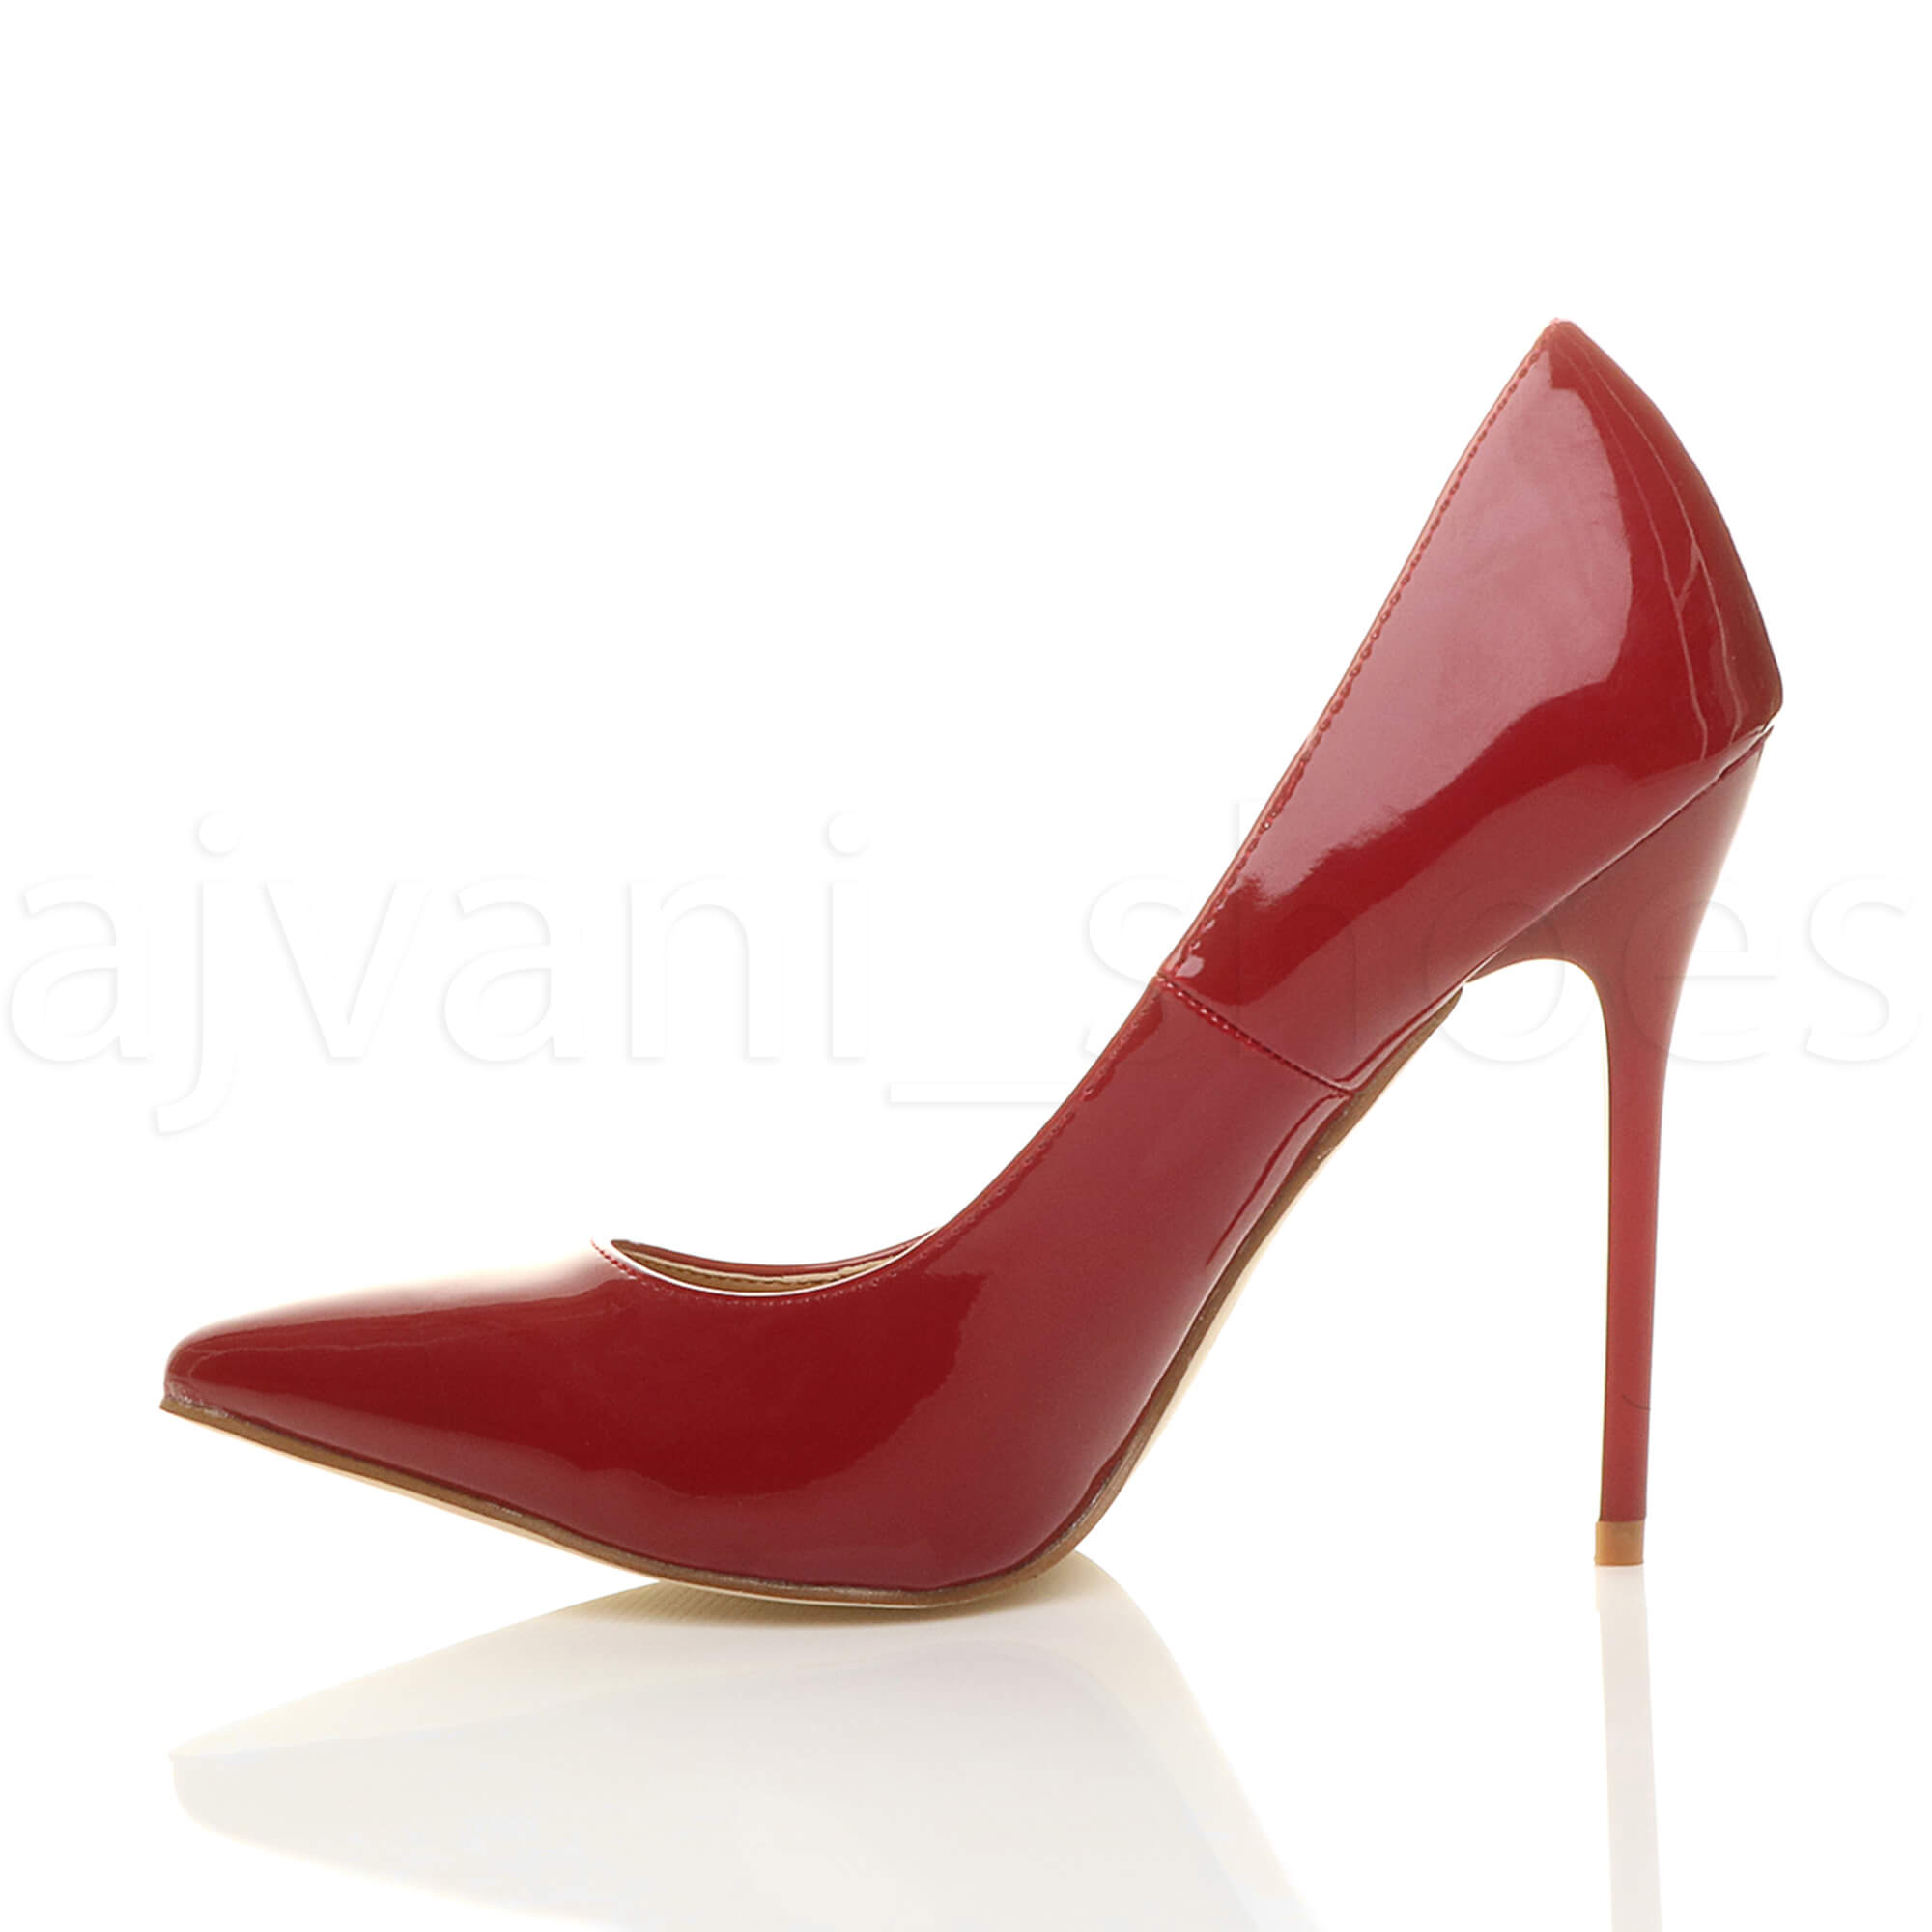 WOMENS-LADIES-HIGH-HEEL-POINTED-CONTRAST-COURT-SMART-PARTY-WORK-SHOES-PUMPS-SIZE thumbnail 36